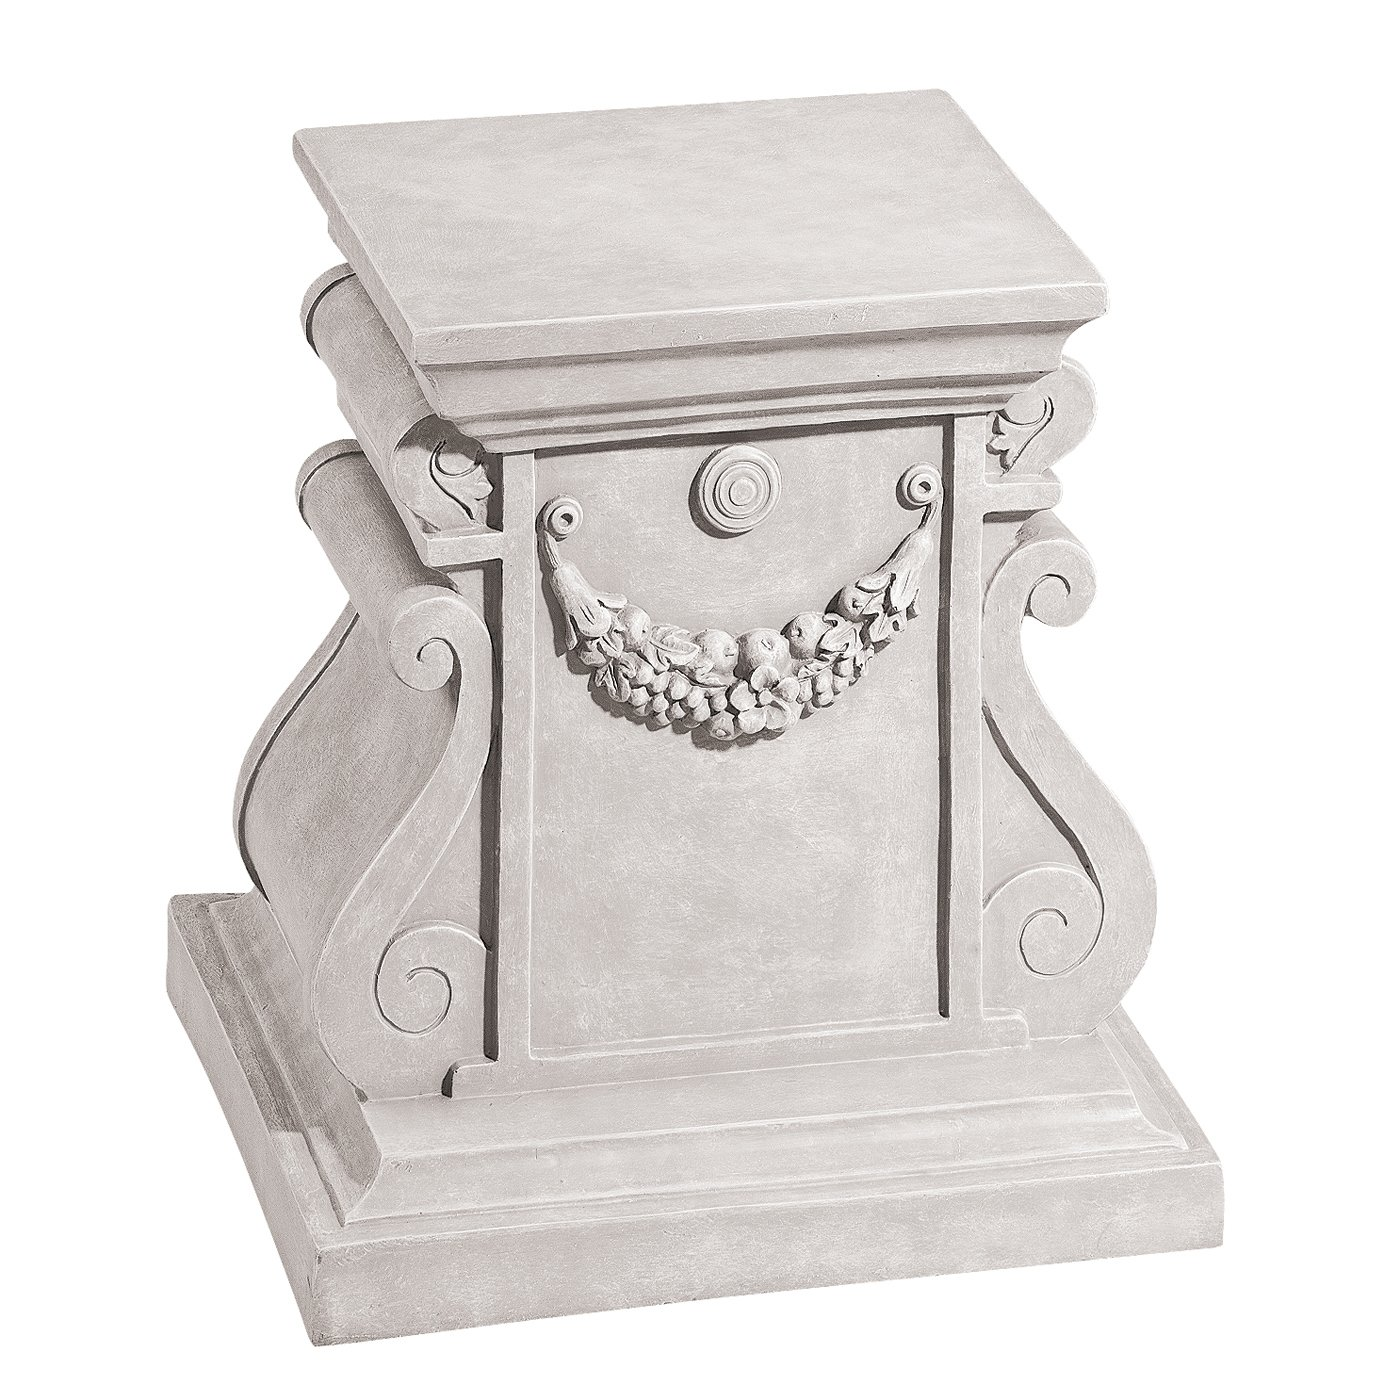 Design Toscano Classic Statuary Plinth Bases - Large